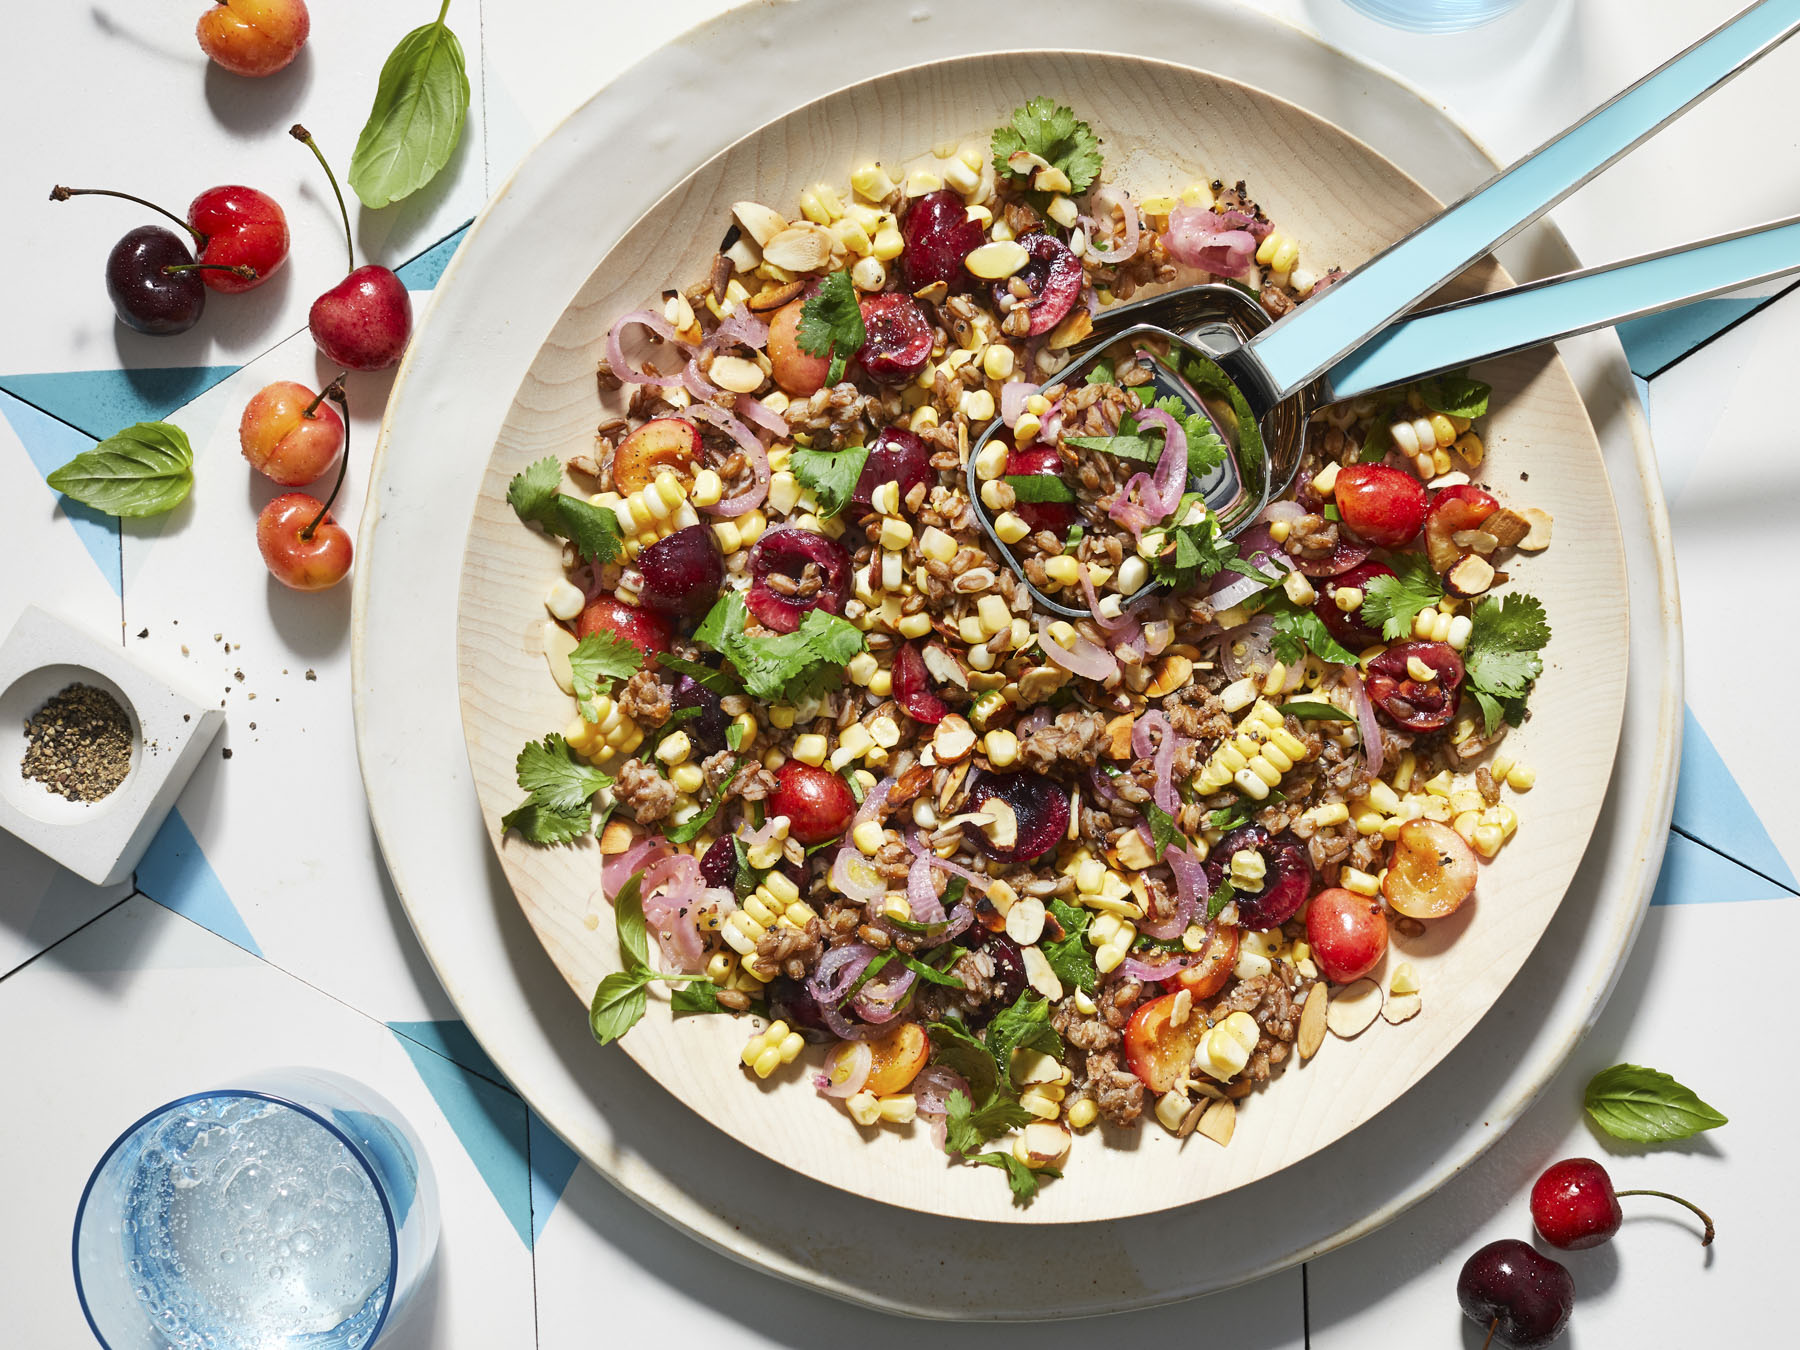 Farro Salad With Cherries, Corn, and Basil